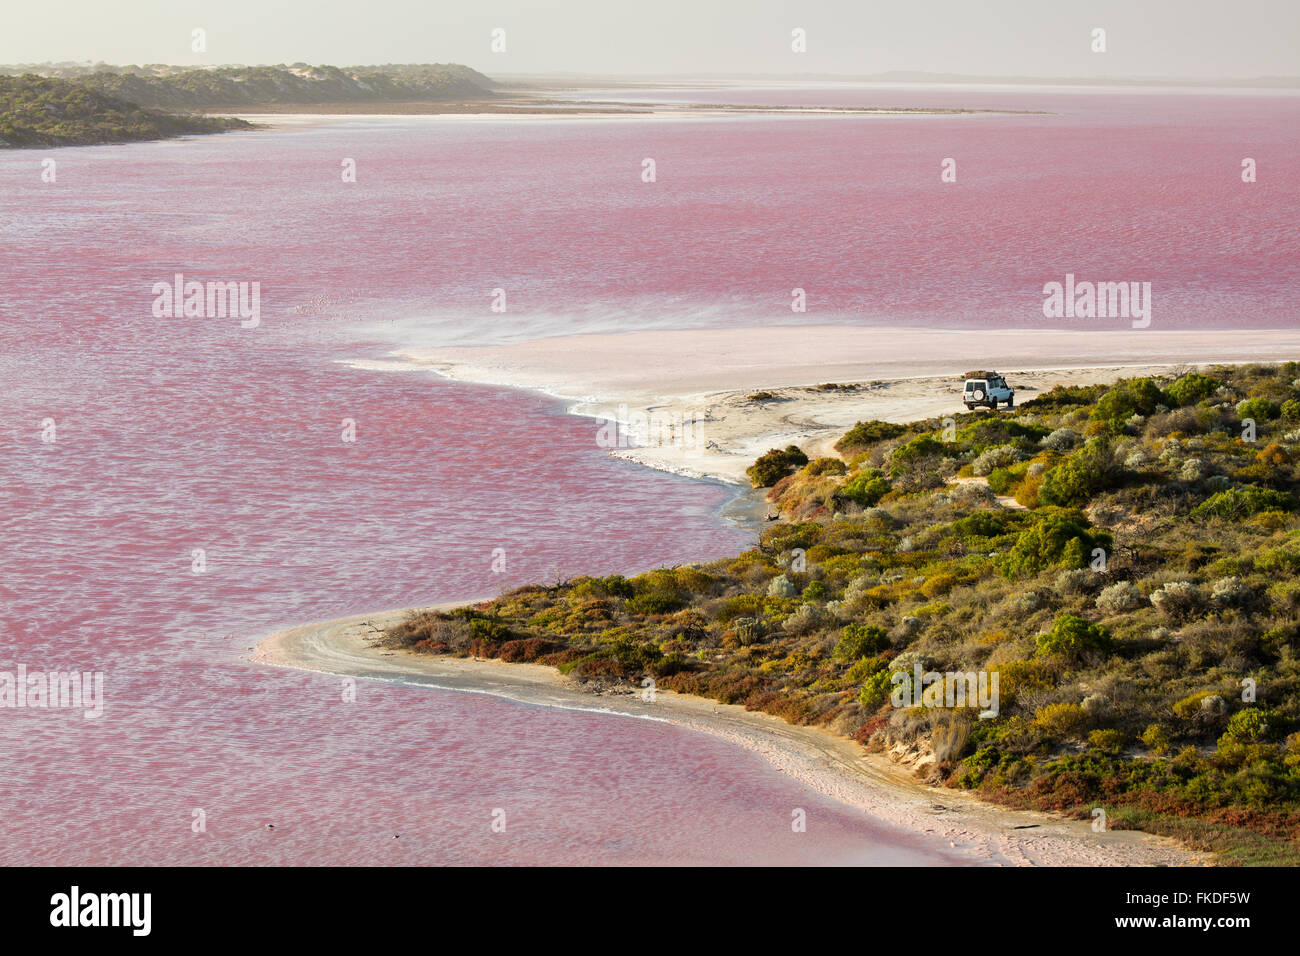 the troopy on the shores of the pink Hutt Lagoon at Port Gregory, West Australia - Stock Image